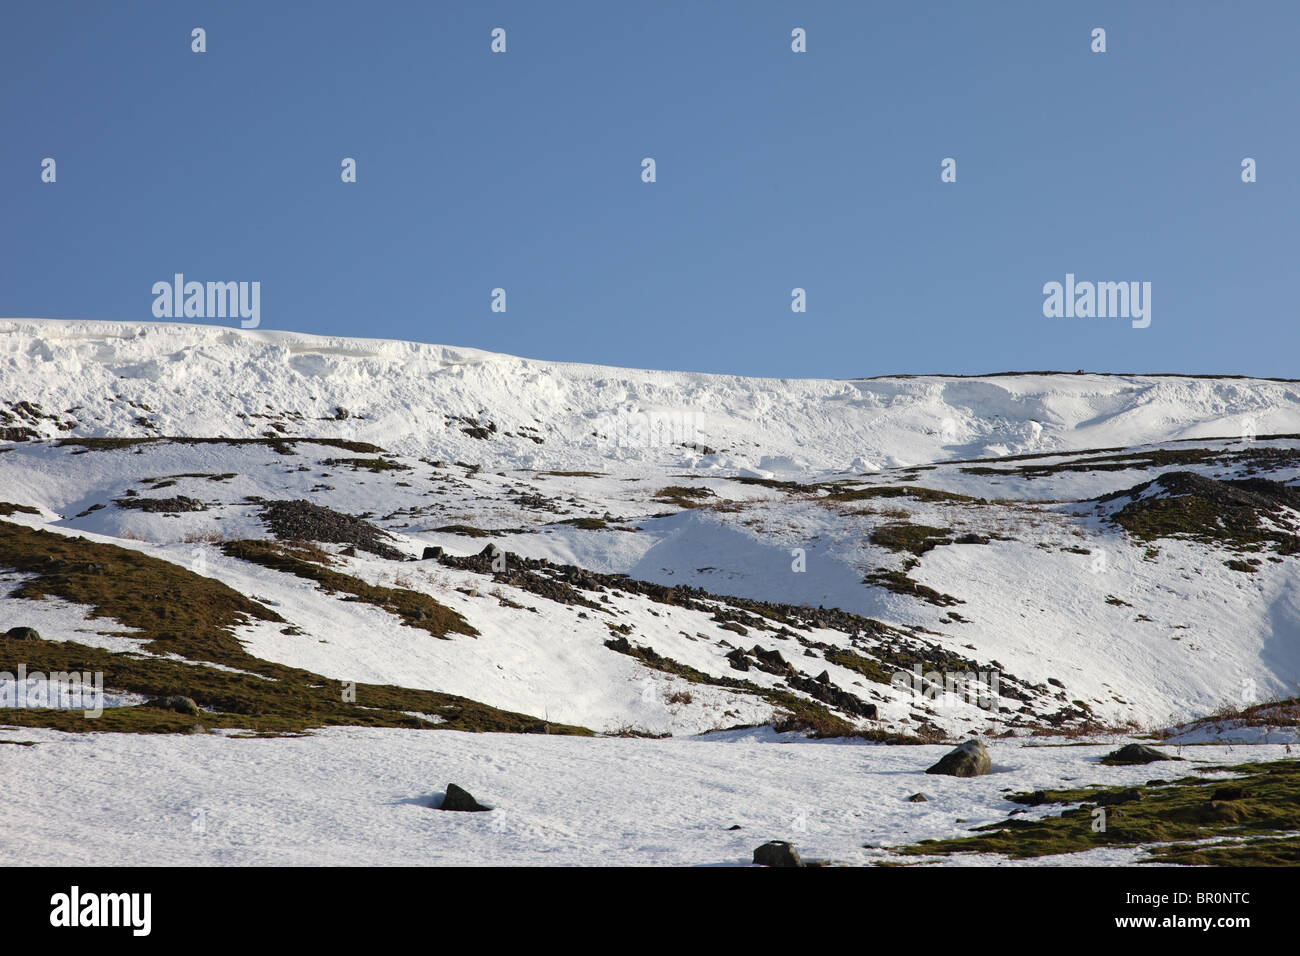 Avalanche Debris From a Collapsed Cornice During a Thaw Fremington Edge Swaledale Yorkshire Dales UK - Stock Image